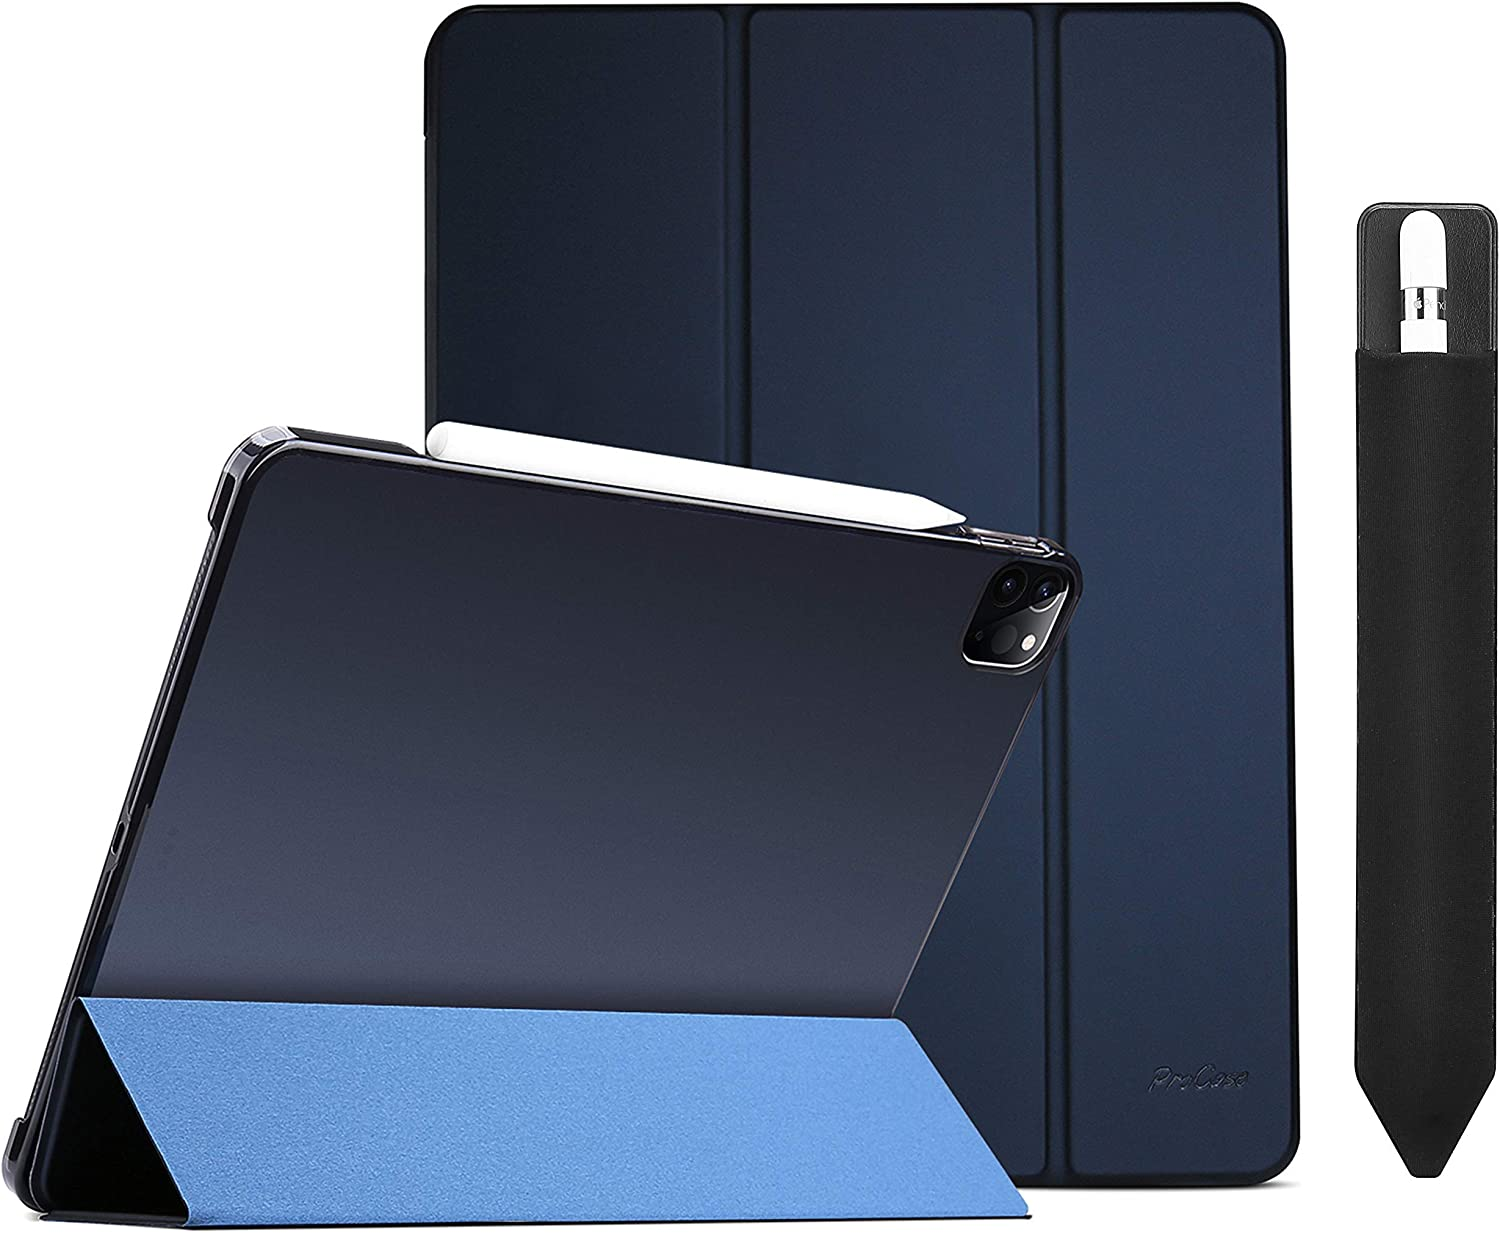 ProCase Navy iPad Pro 12.9 Slim Case 4th Generation 2020 & 2018 Bundle with Black Pencil Holder Sticker for Apple Pencil 1st and 2nd Gen